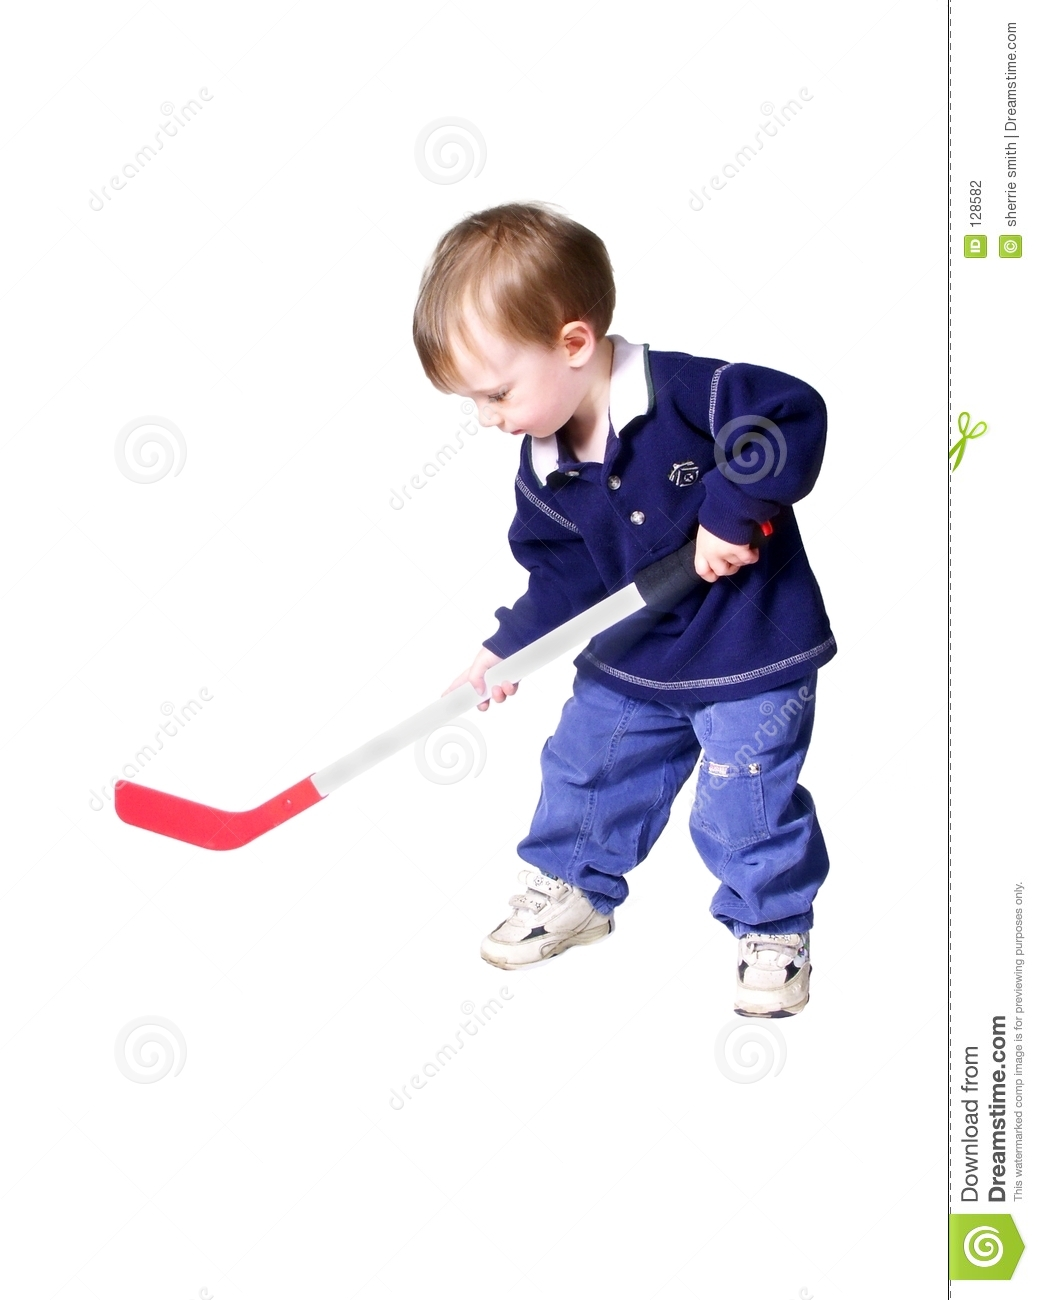 Hockey #2 stock photo. Image of toys, baby, child, white ...